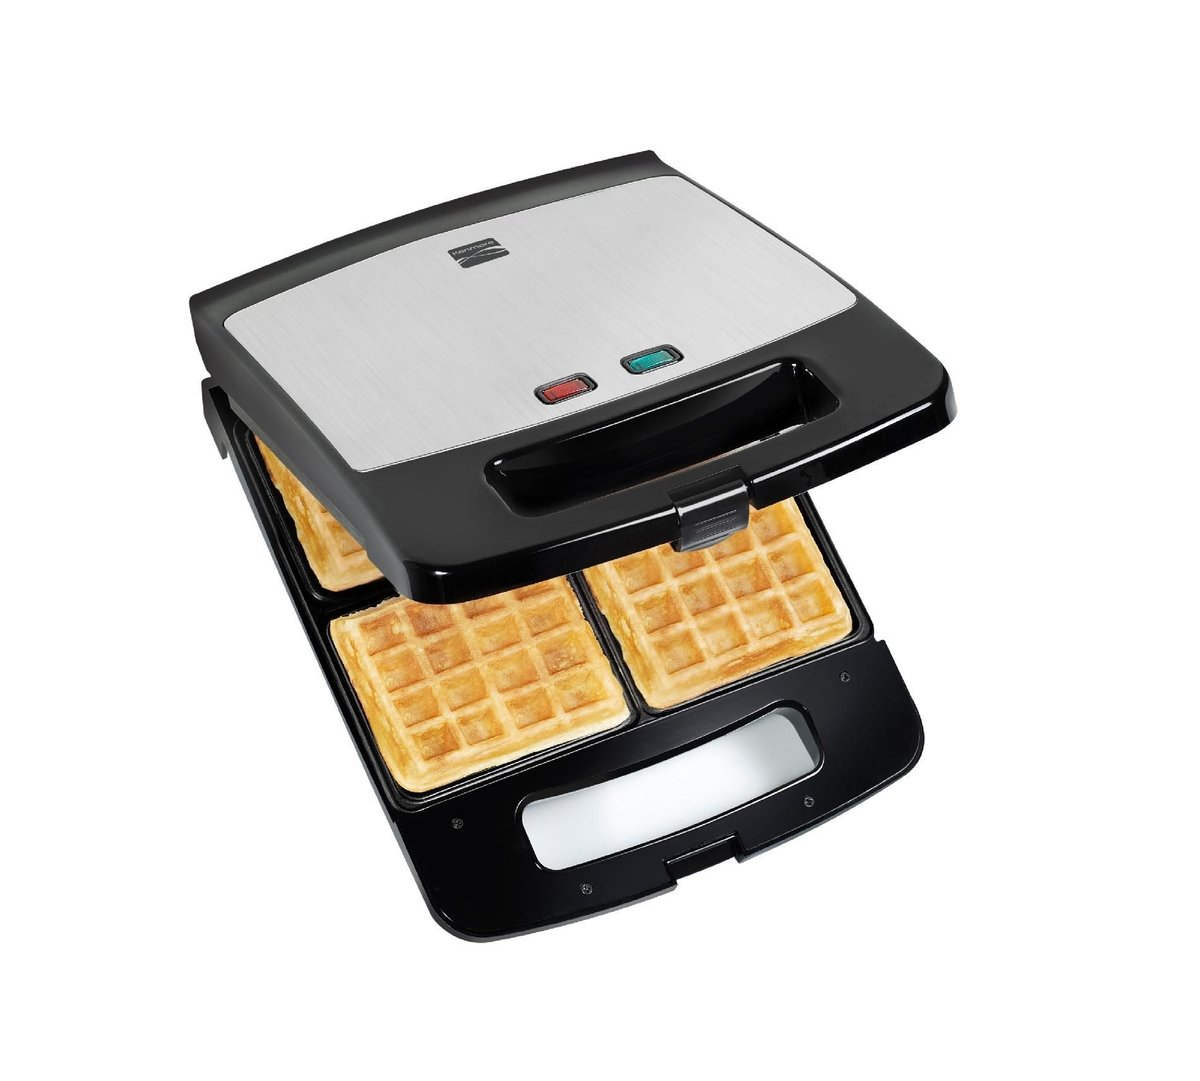 Kenmore 29453 4-Slice Waffle Maker in Stainless Steel